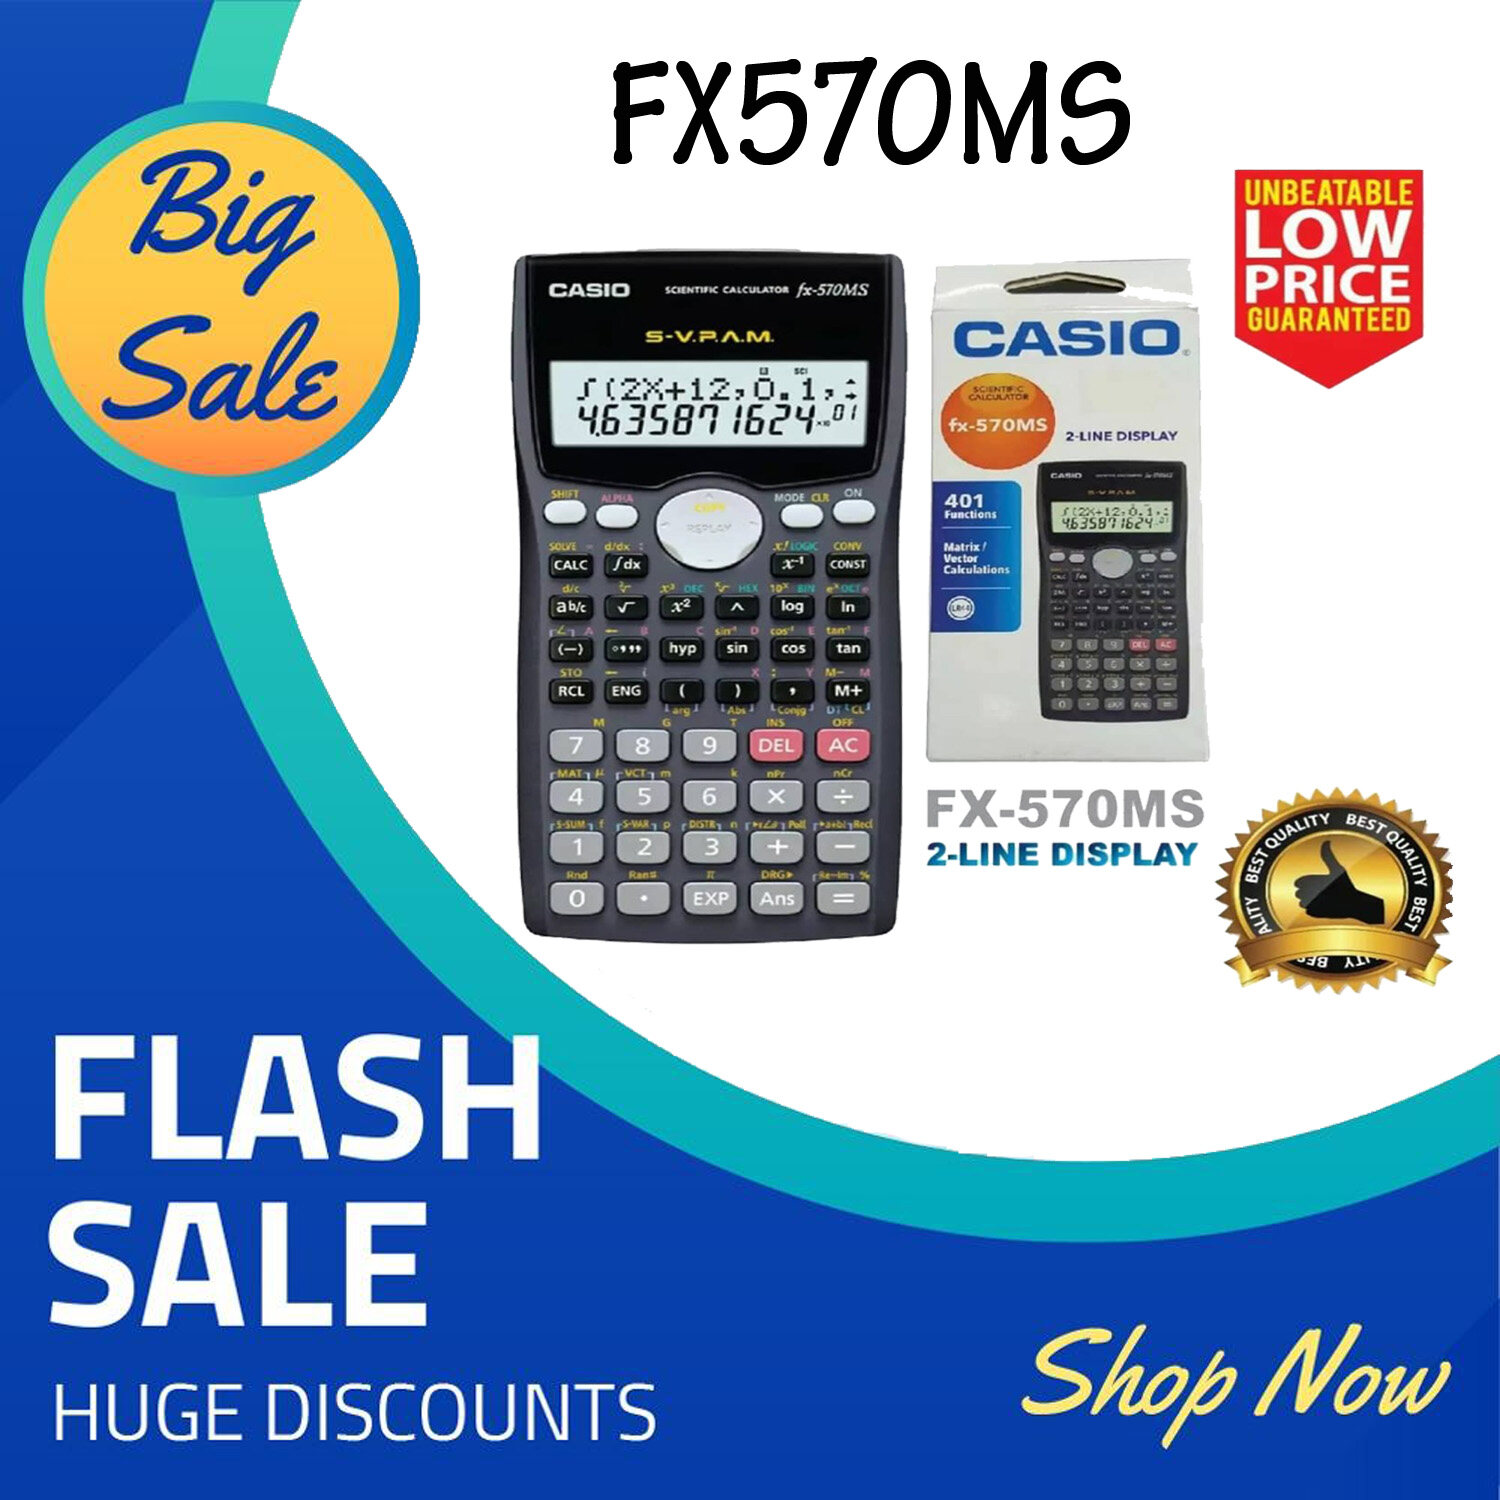 Casio Scientific Calculator FX-991MS FX-570MS FX-570EX FX-570ES PLUS (Unbeatable Low Price) Very Fast Shipping (FX570MS)